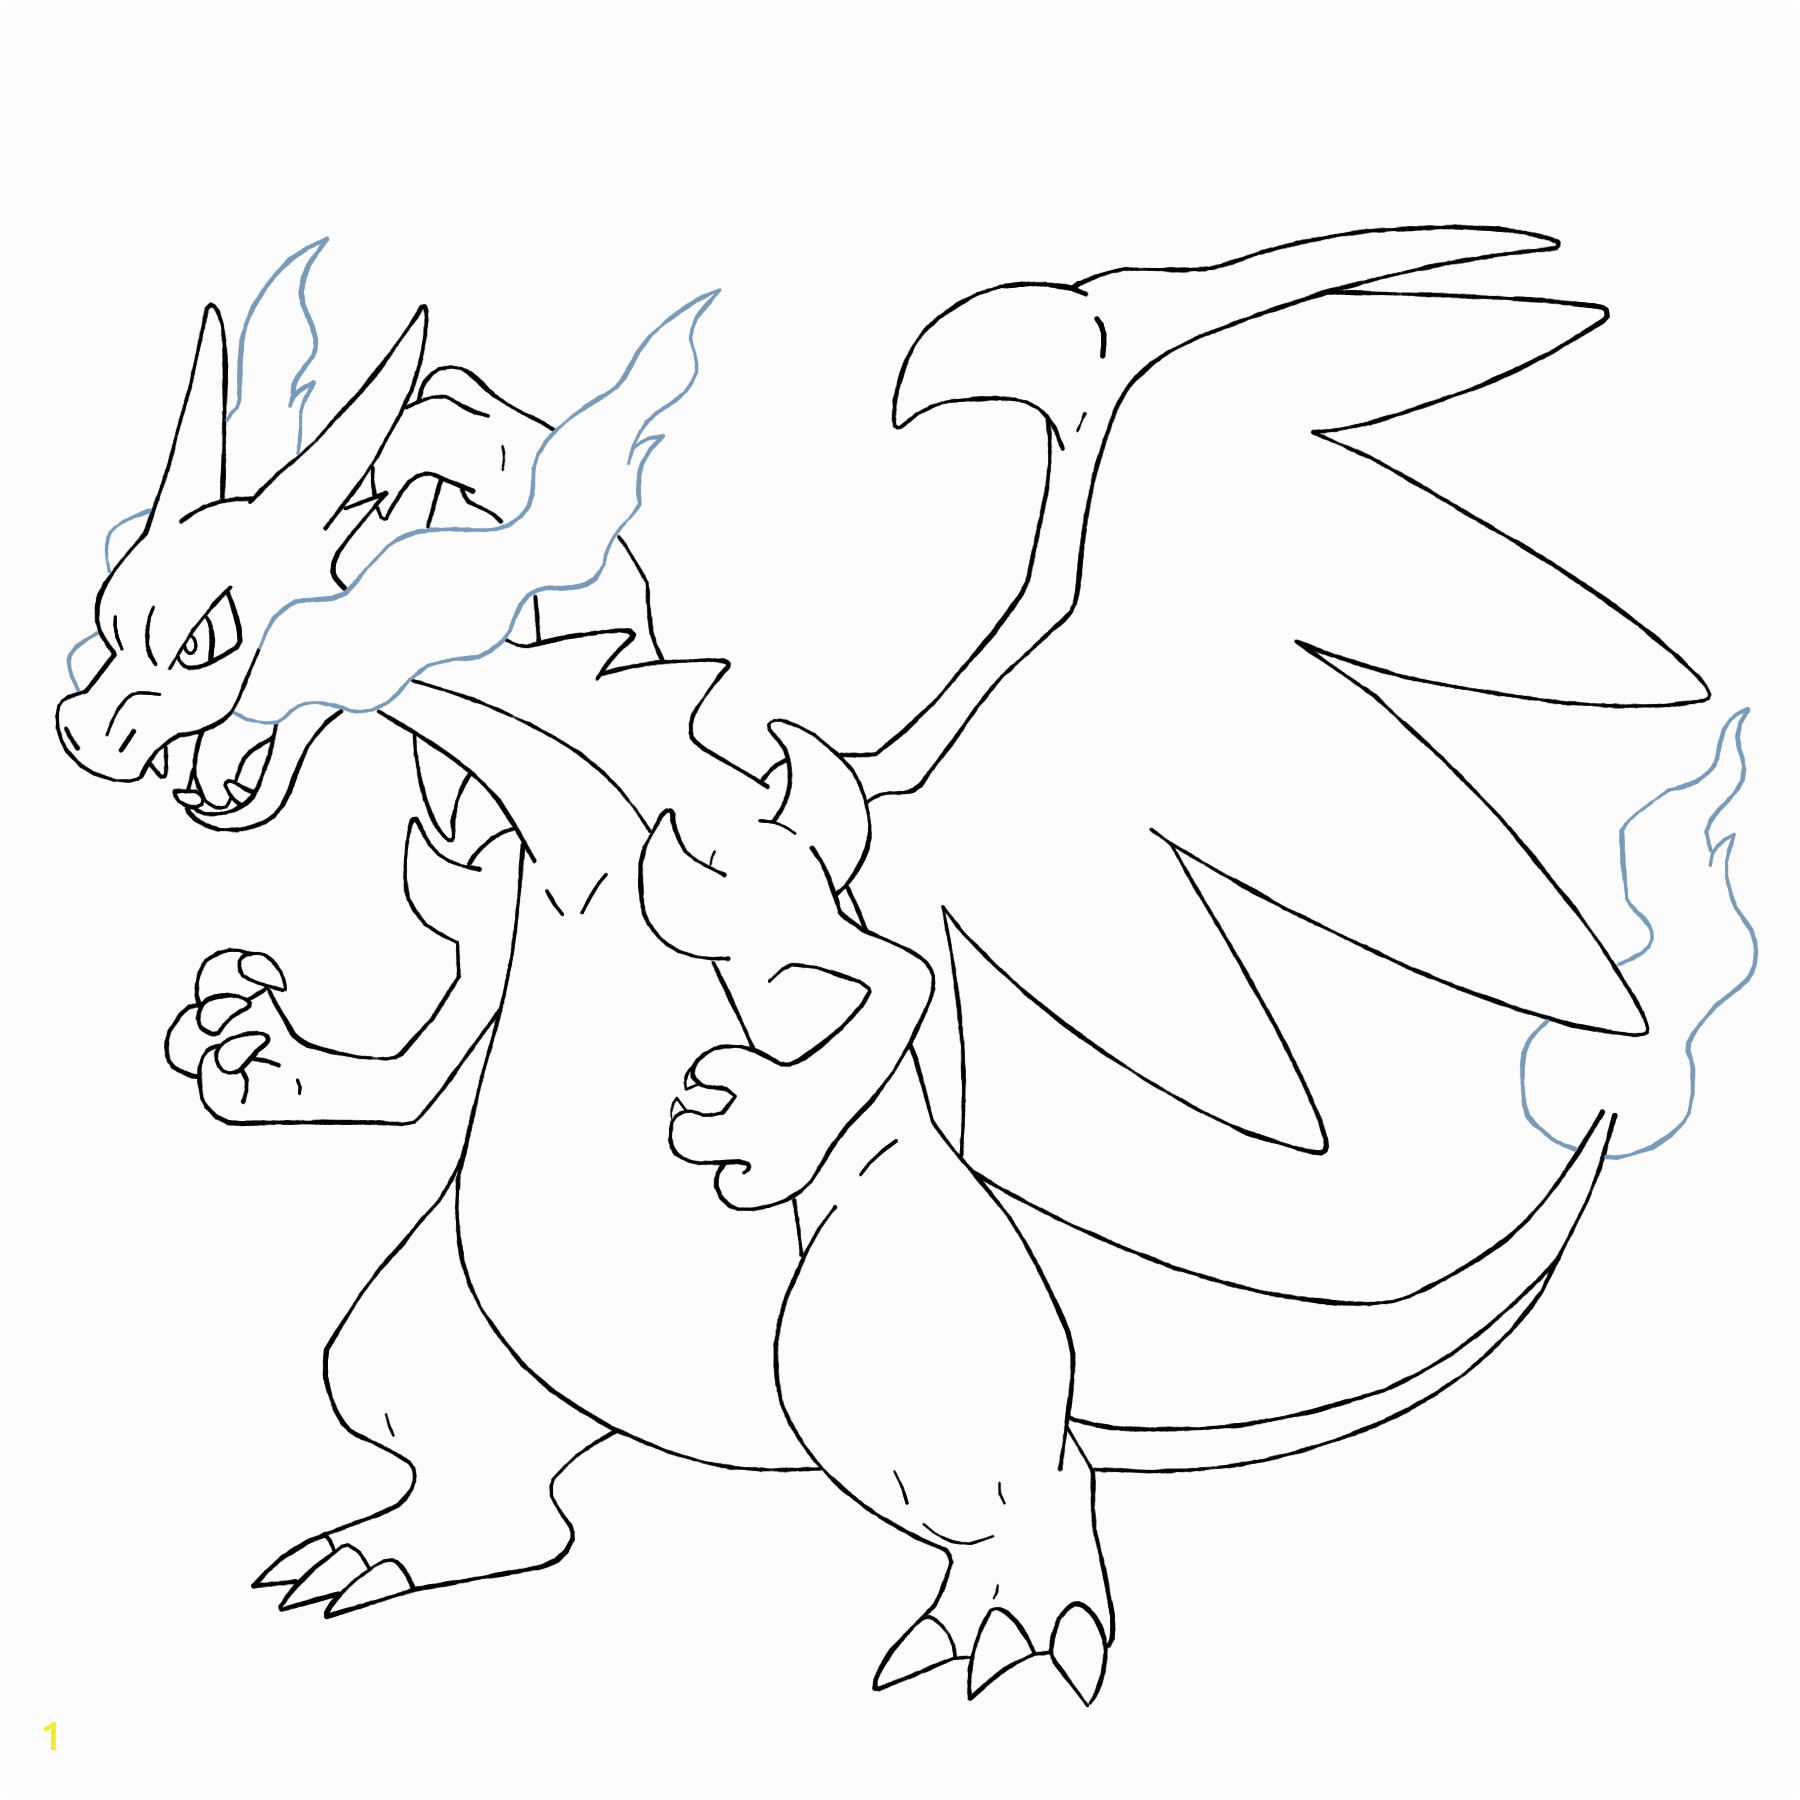 mega charizard ex coloring page inspirational gallery of how to draw mega charizard ex rock cafe of mega charizard ex coloring page